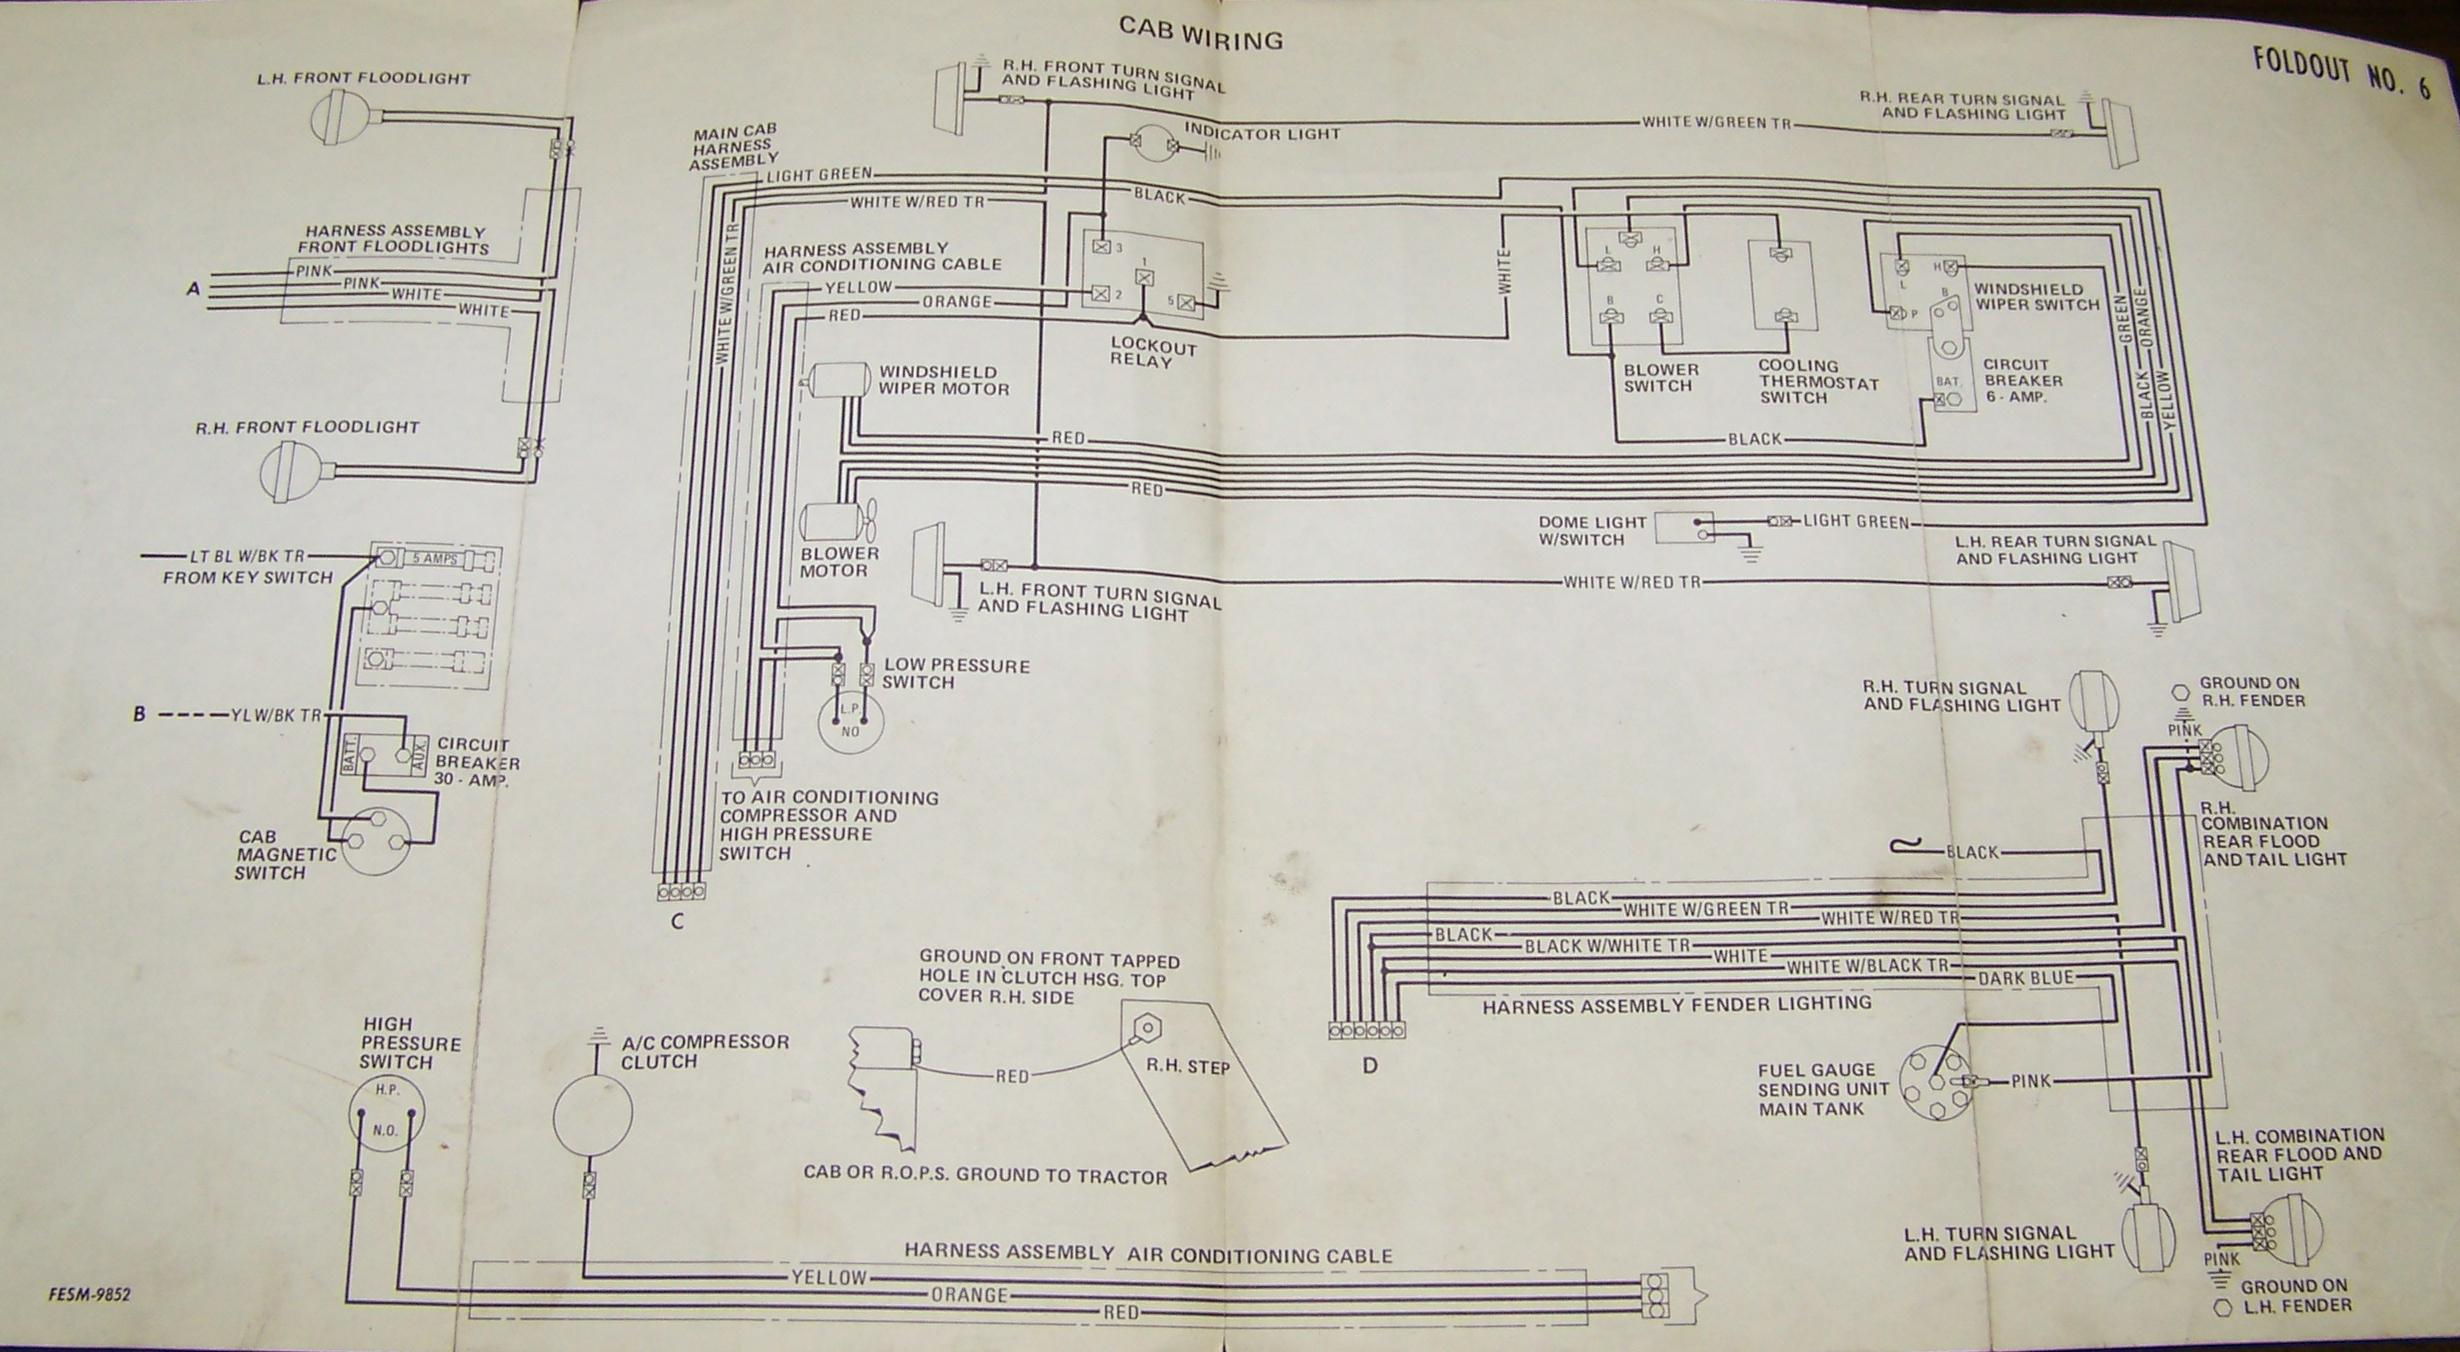 Case Plug Wire Diagram Wiring Harness Basic Electrical Carter Gruenewald Co Inc Ih Farmall Tractor Diagrams